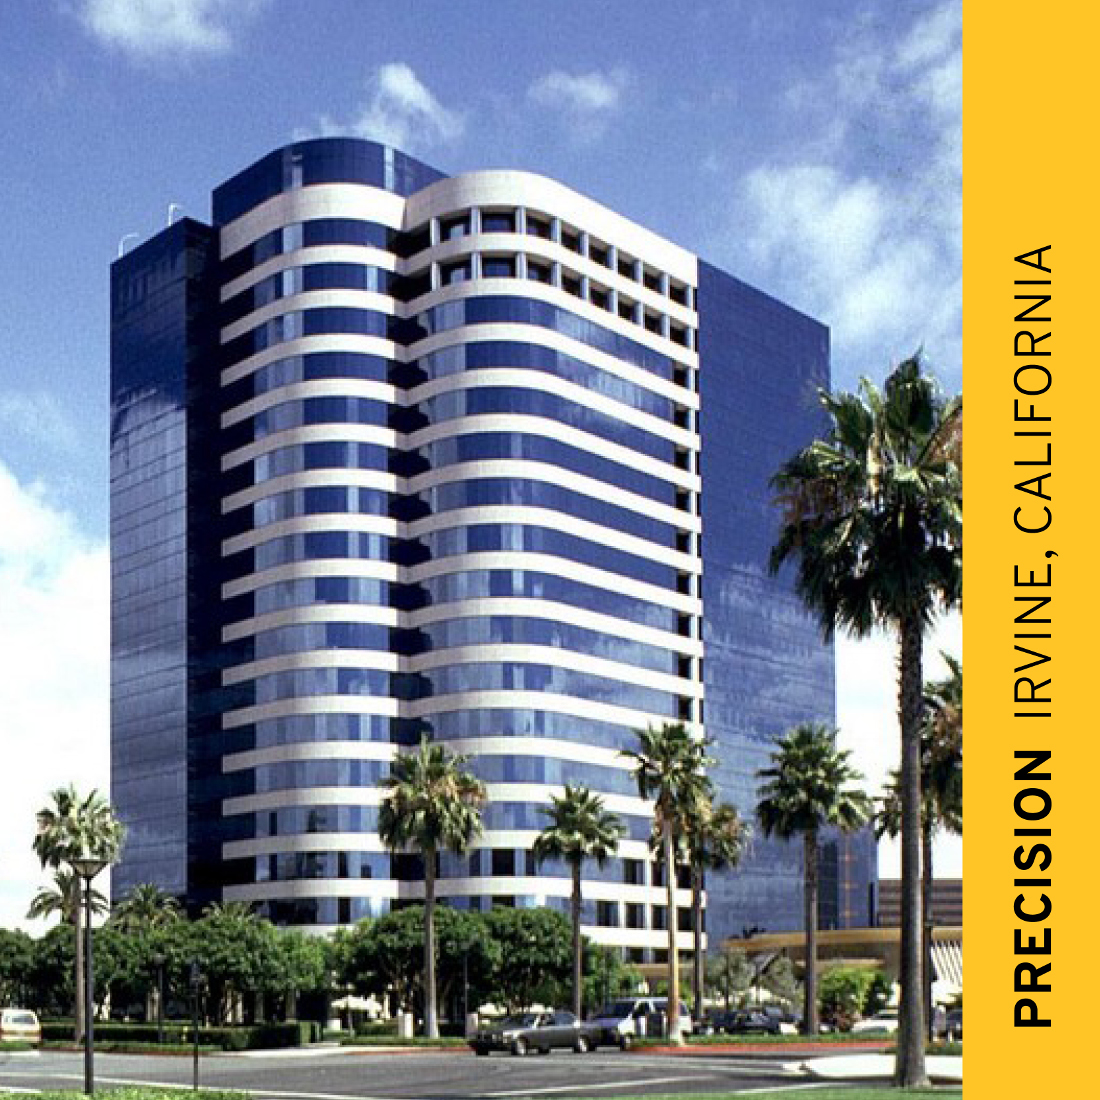 PGCC's new office at Lakeshore Towers in Irvine, CA